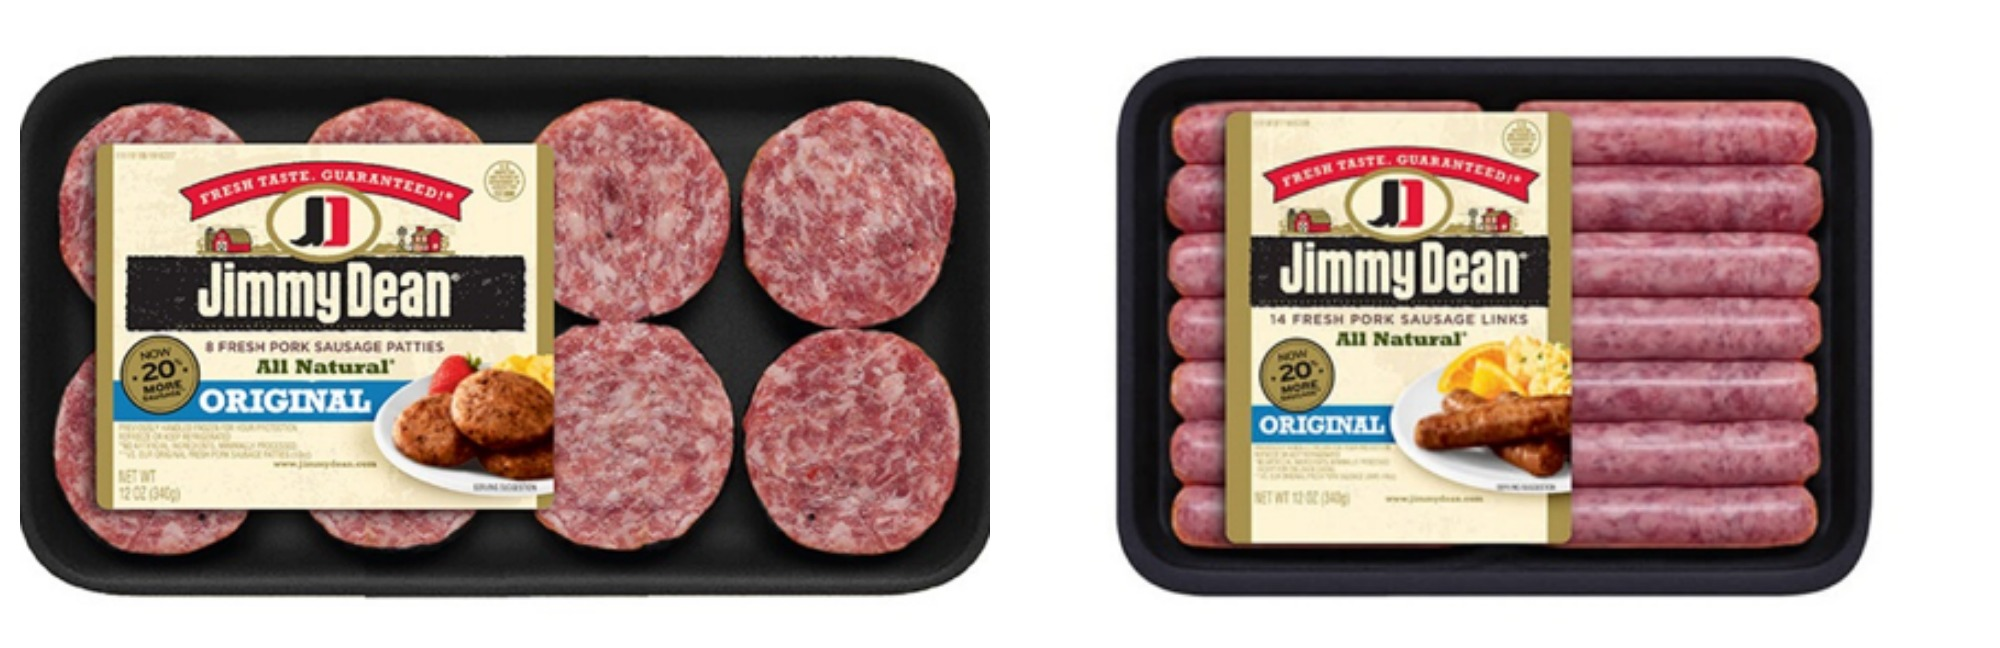 Grab A Great Deal On Jimmy Dean® Premium All Natural Pork ...